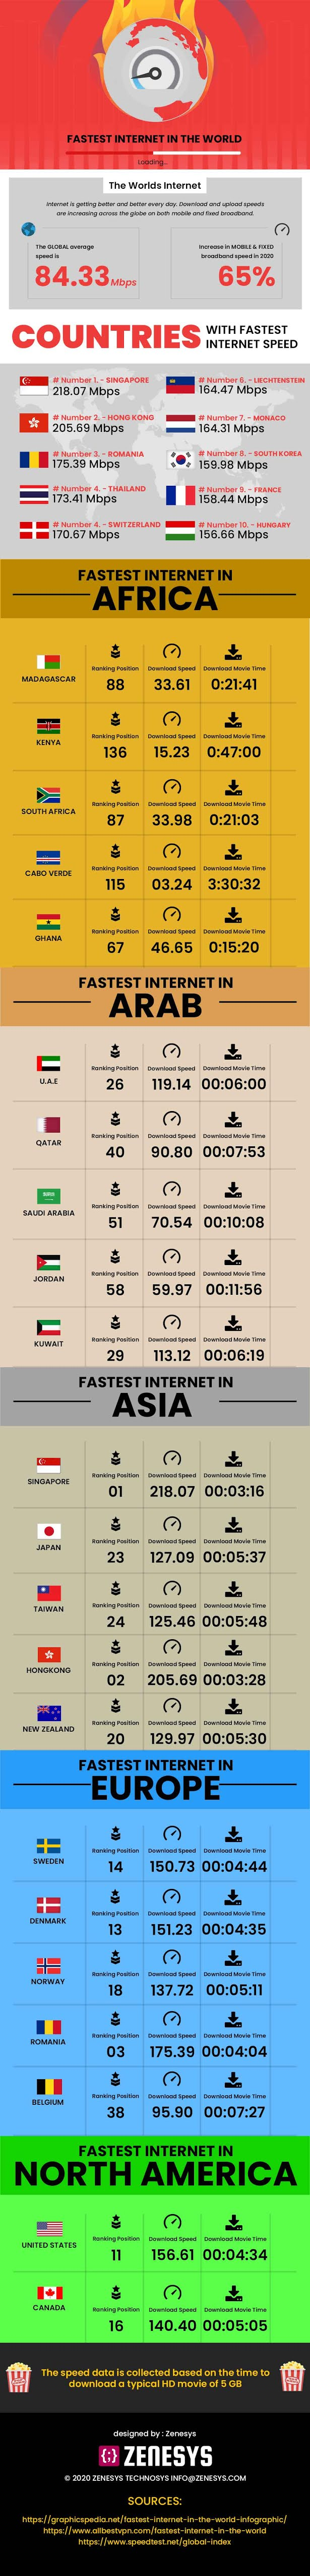 Countries with the fastest internet #infographic #Internet #infographics #Fastest internet